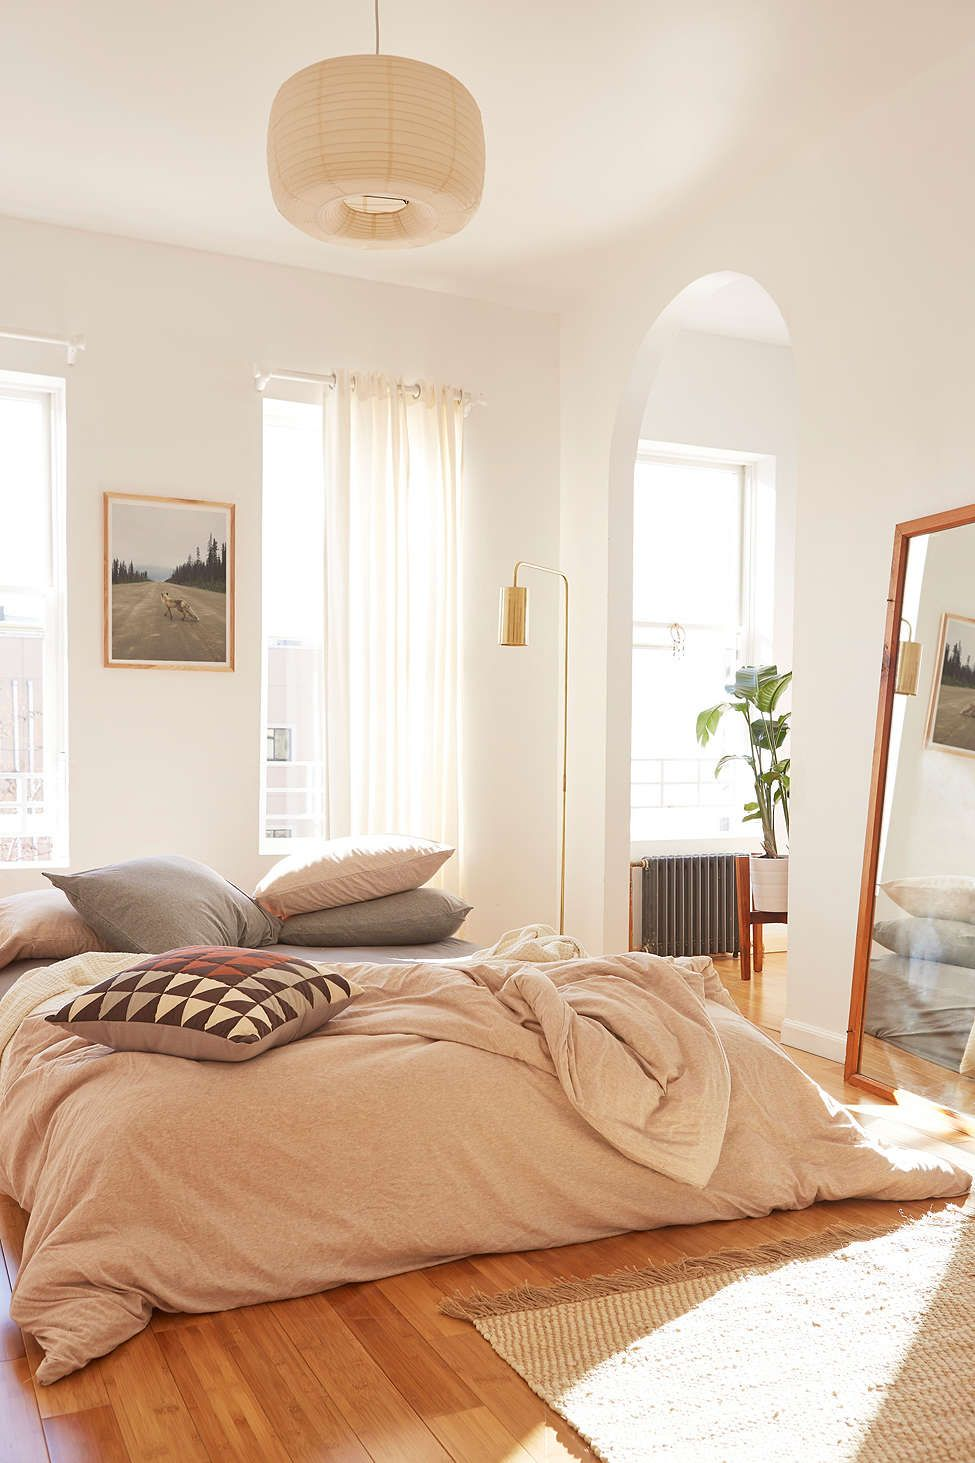 39161d55a38 Heathered Jersey Duvet Cover - Urban Outfitters